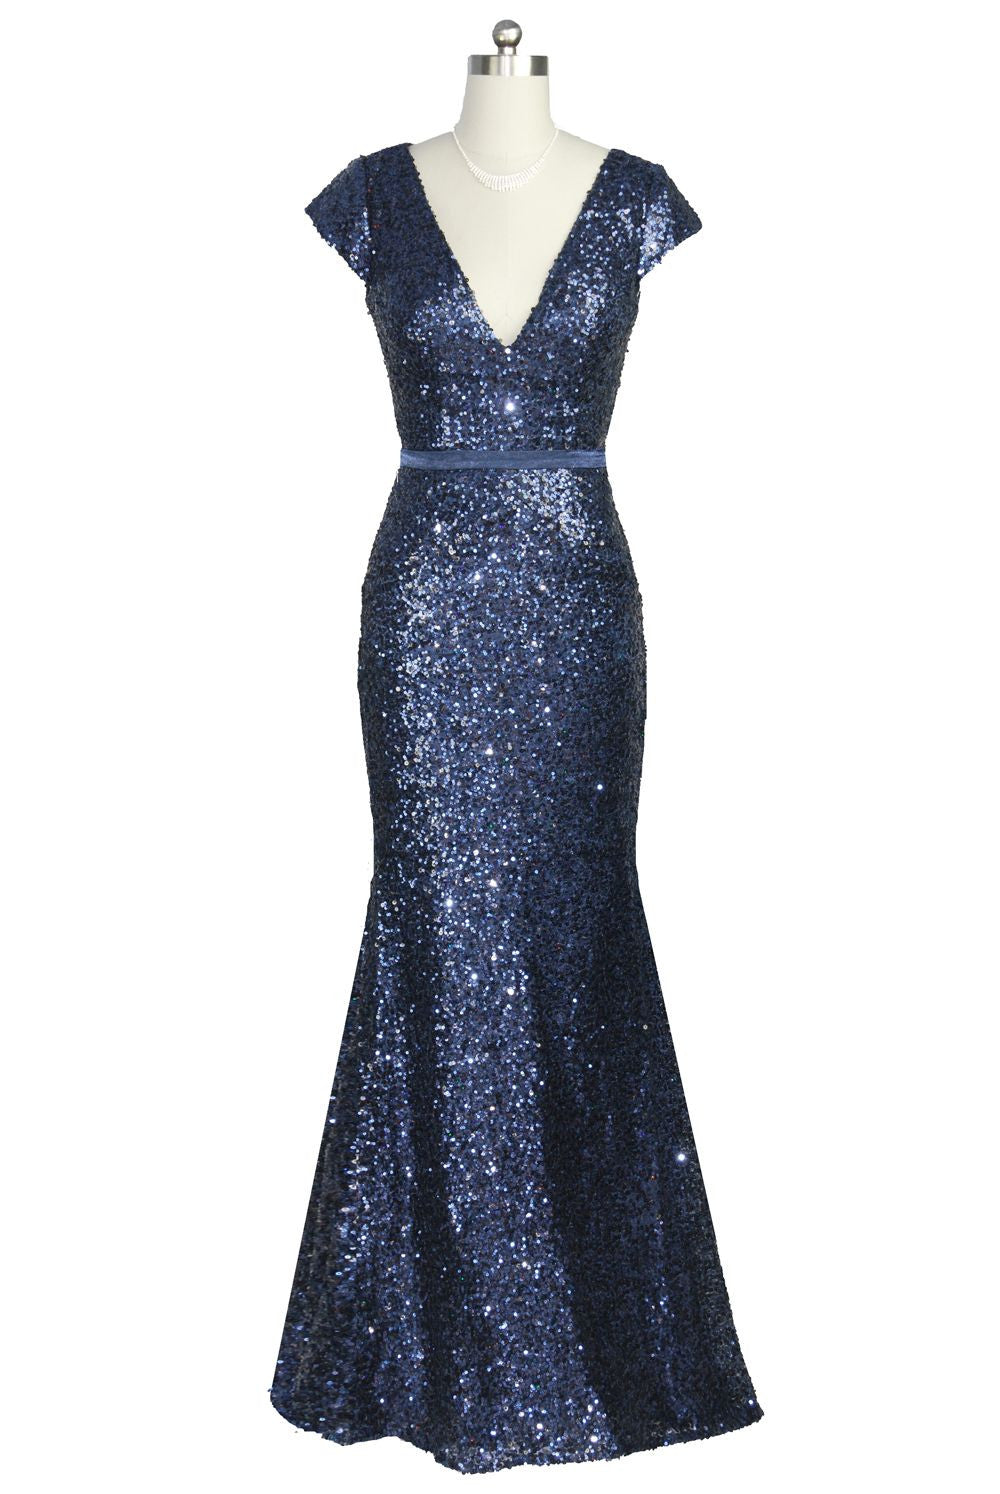 Midnight Blue Sequin Capped Long Evening Dress Prom Pageant Dress ball gown